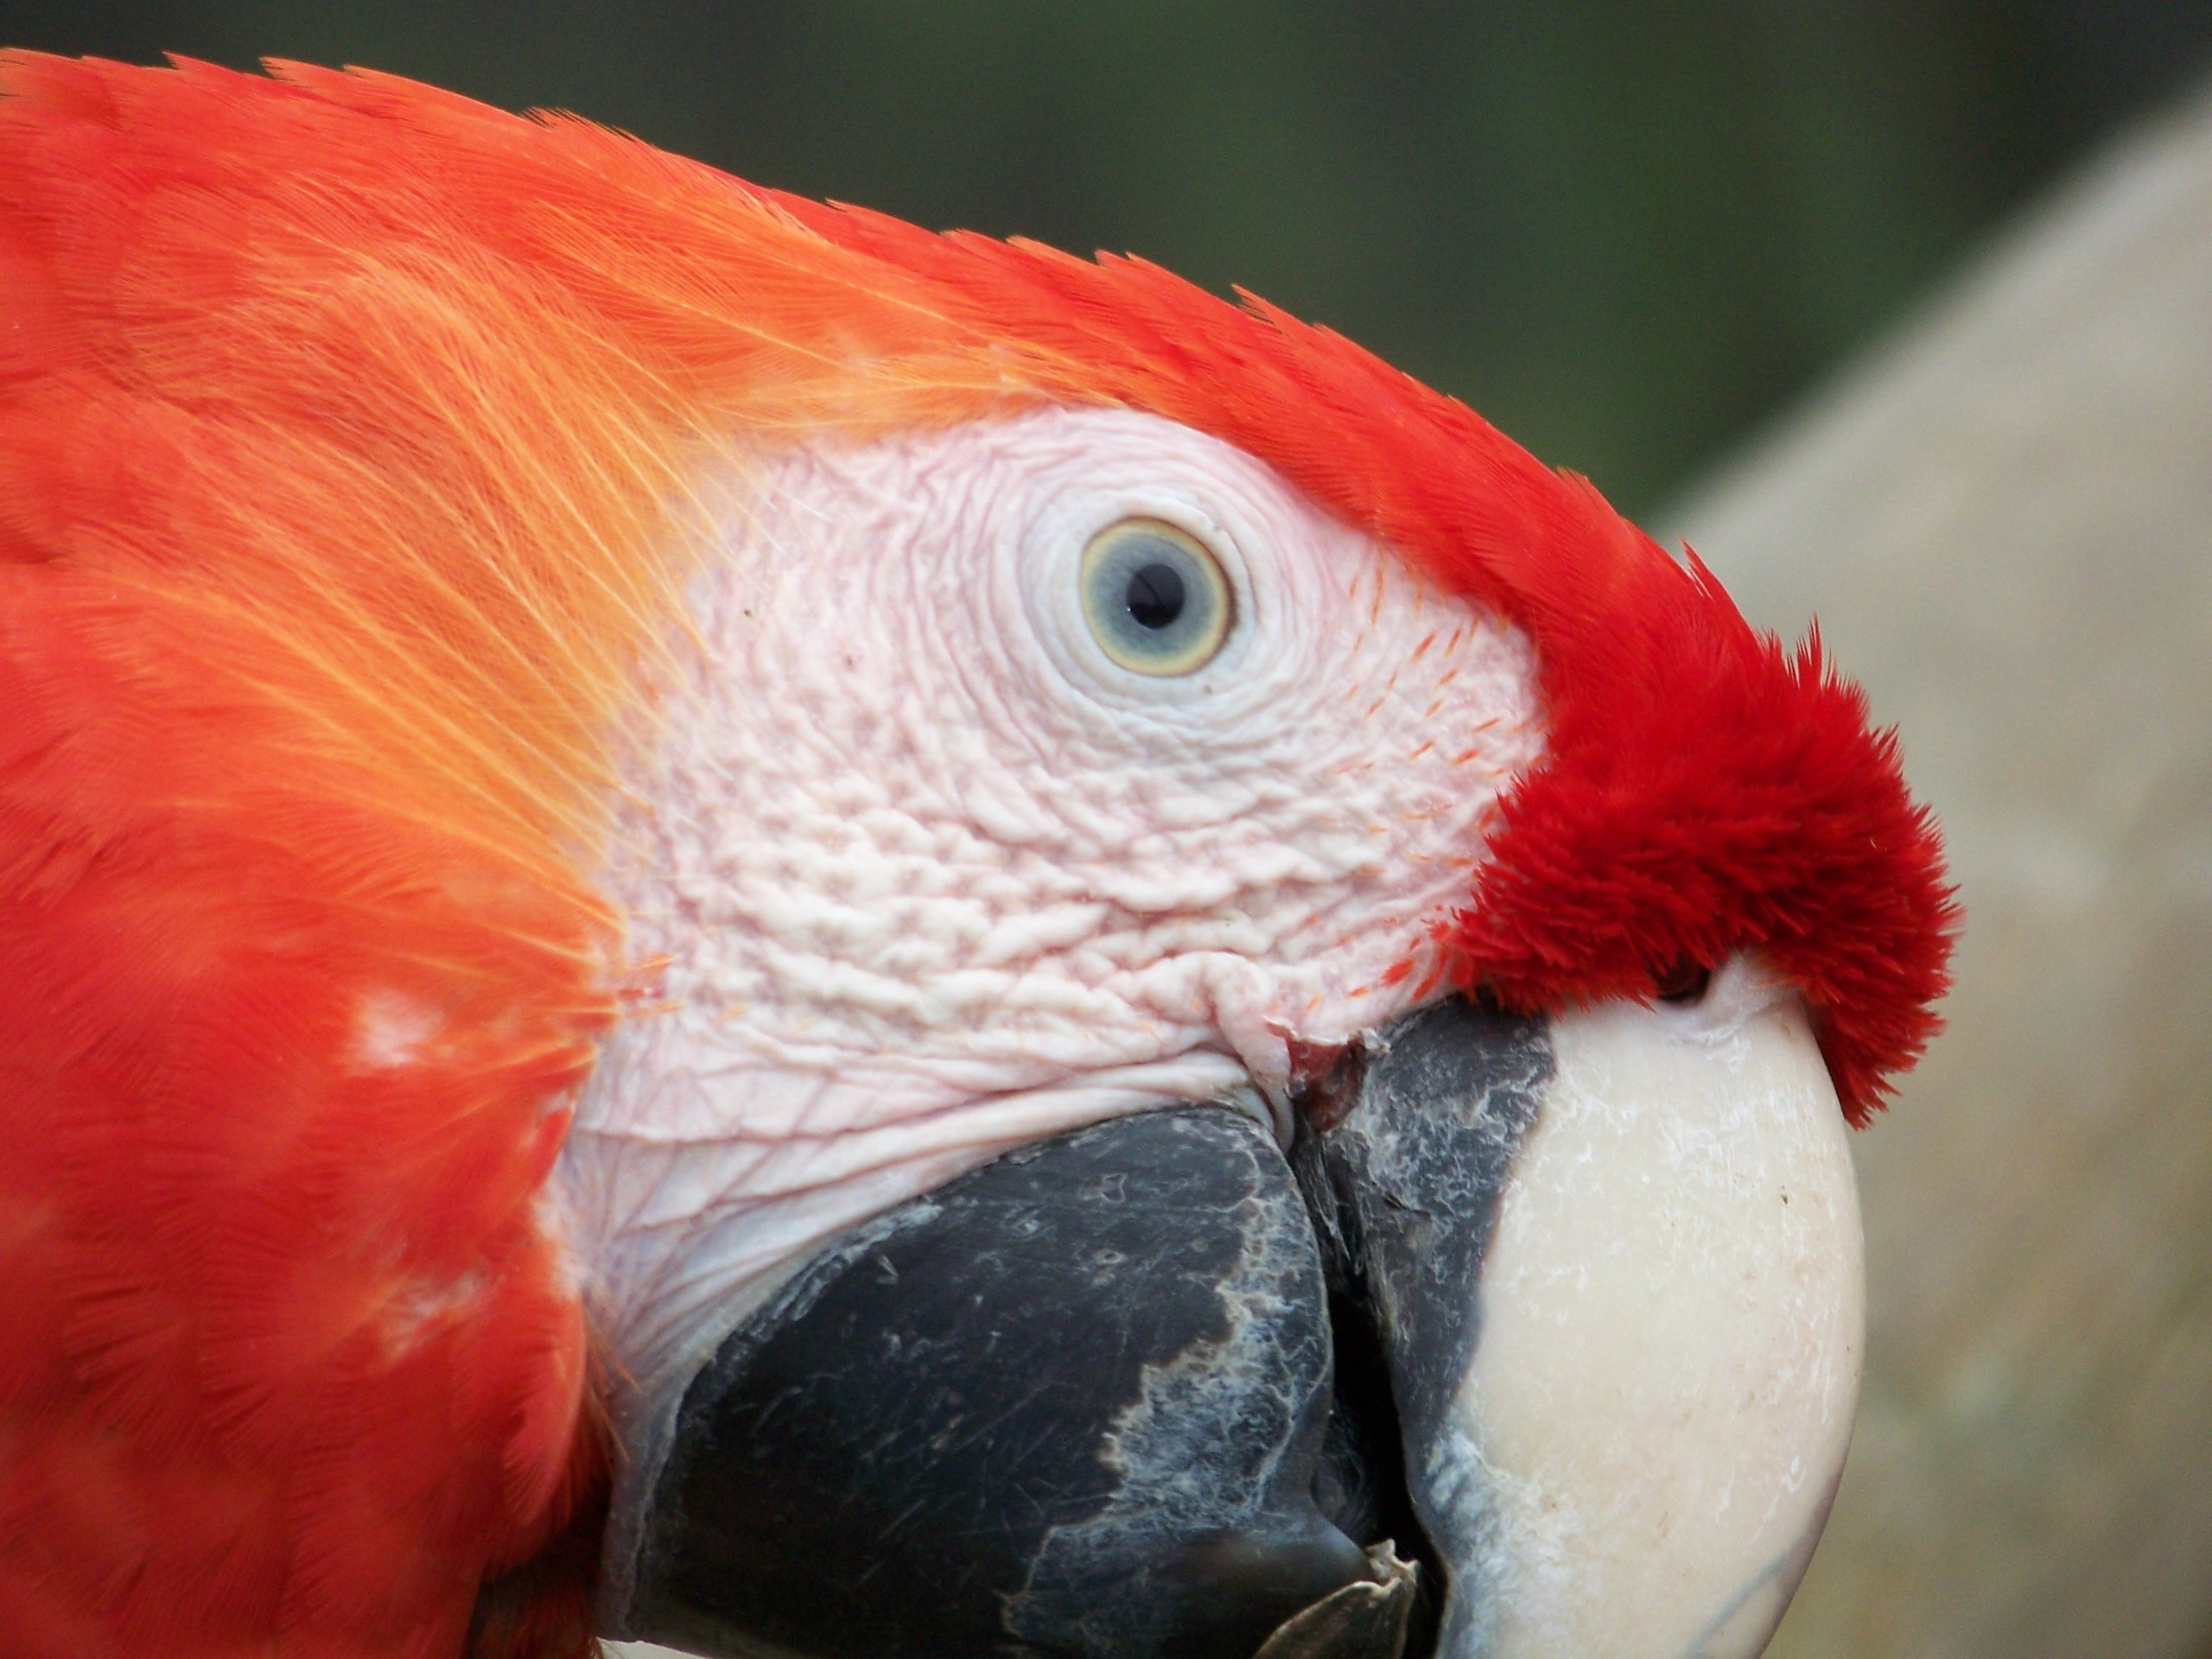 2560x1440 Red Macaw Face YouTube Channel Cover